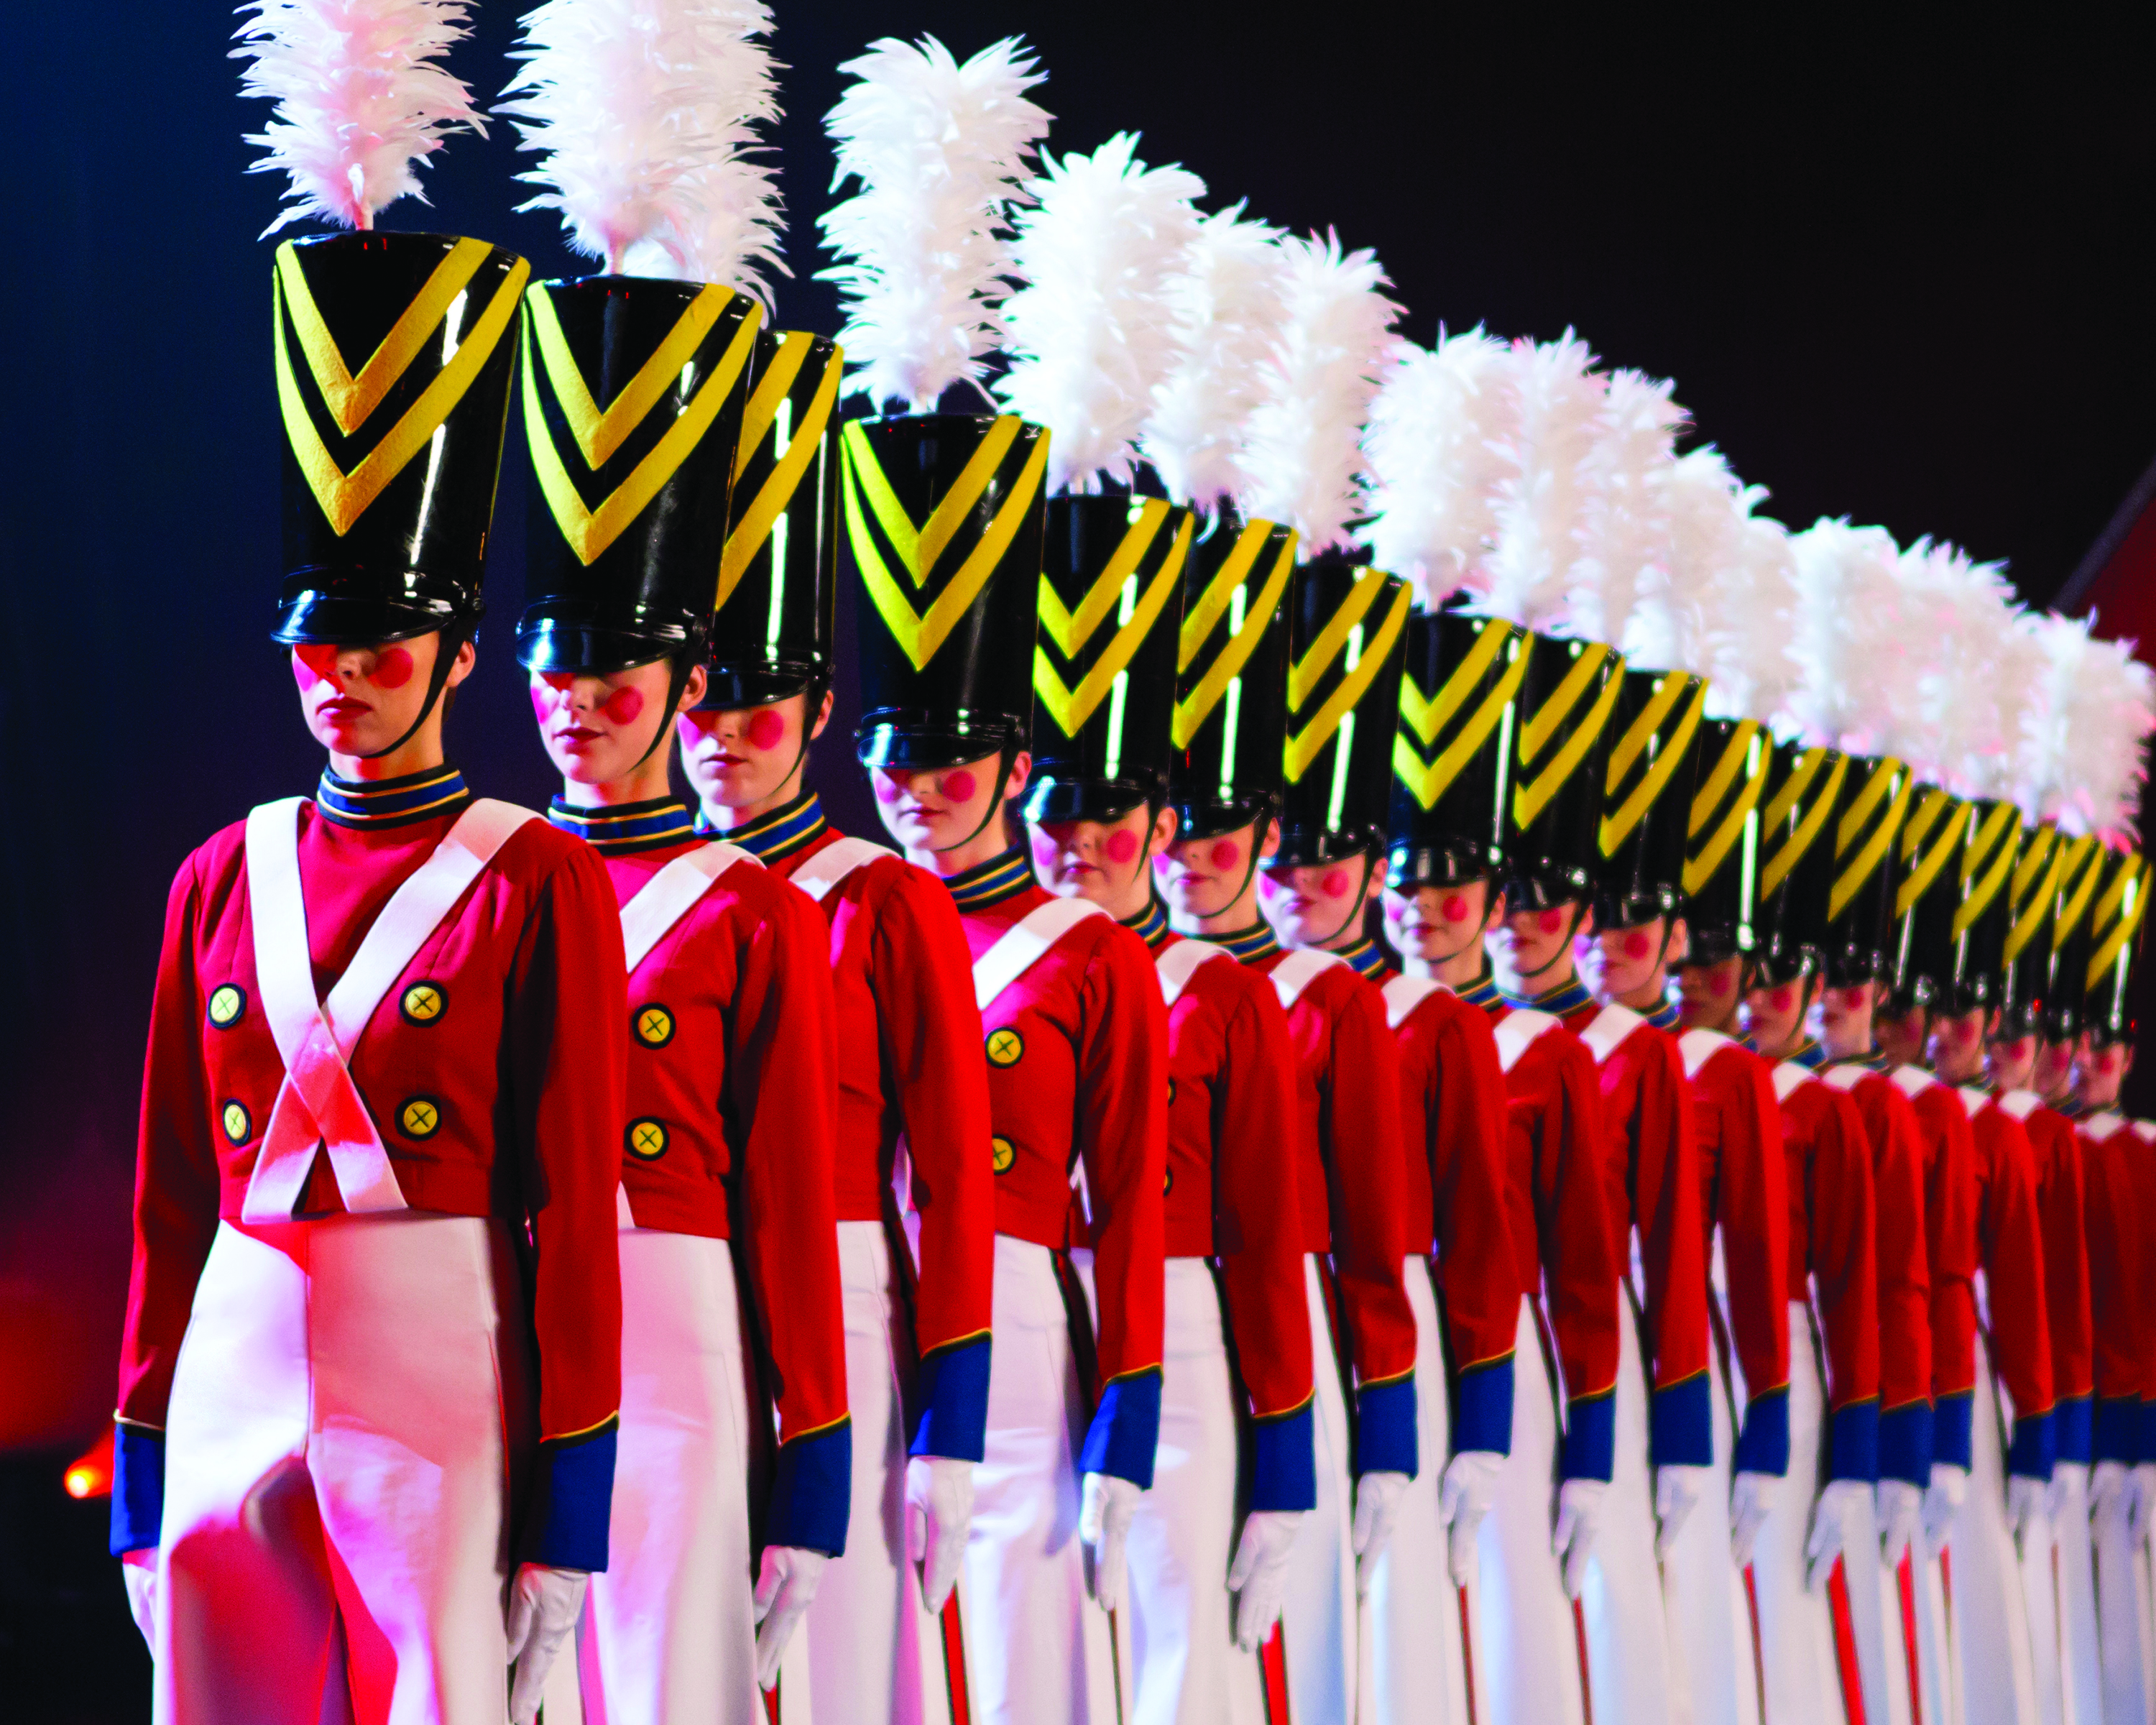 christmas spectacular starring the radio city rockettes youll get a kick out of this holiday stalwart which still features santa wooden soldiers and the - Best Christmas Shows